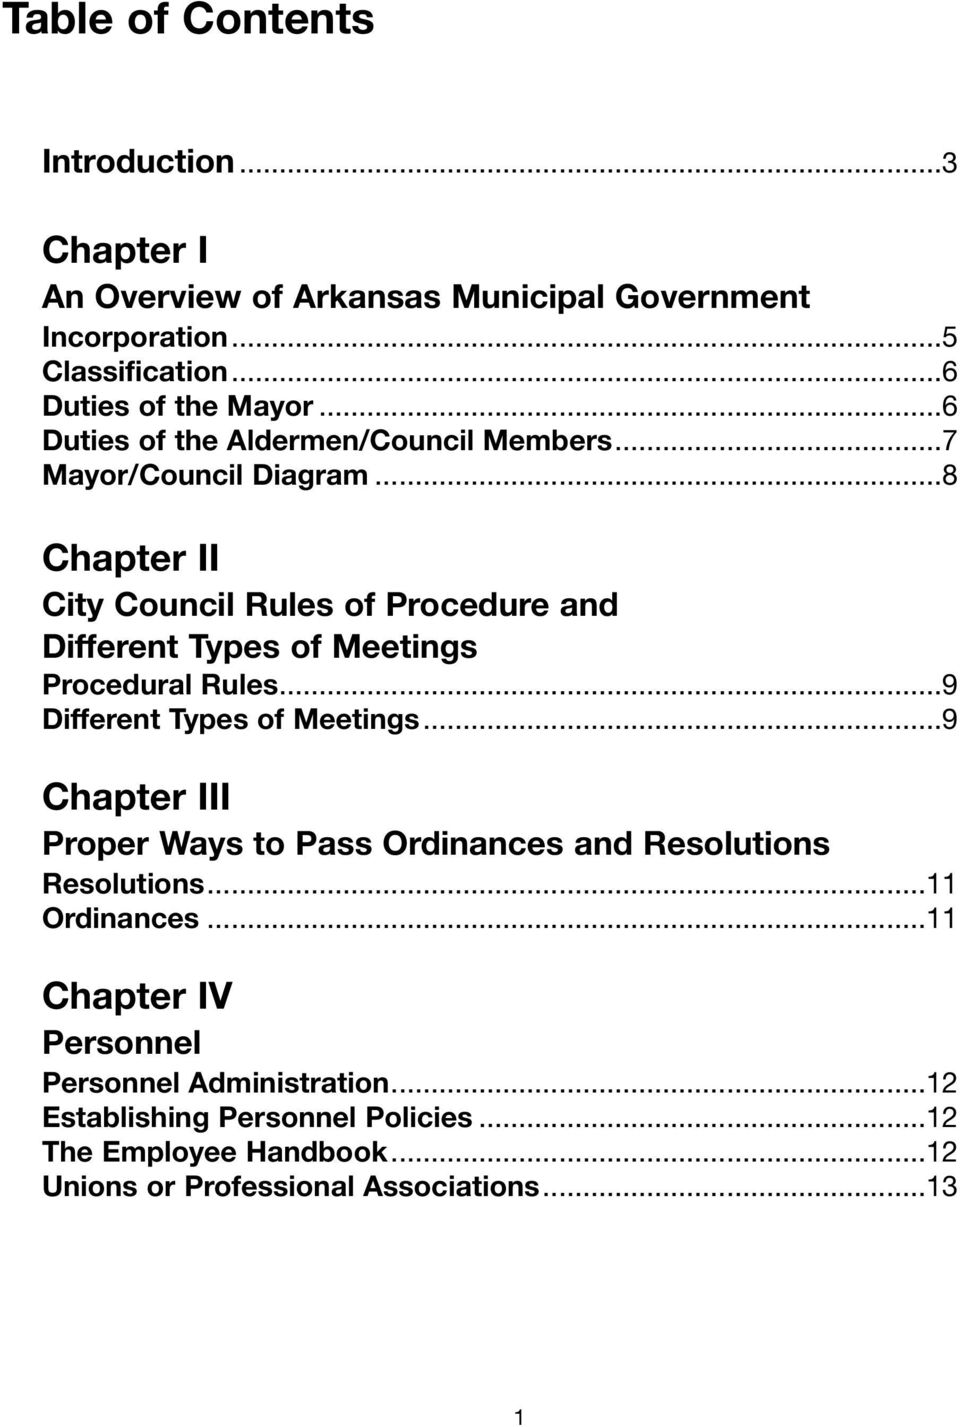 ..8 Chapter II City Council Rules of Procedure and Different Types of Meetings Procedural Rules...9 Different Types of Meetings.